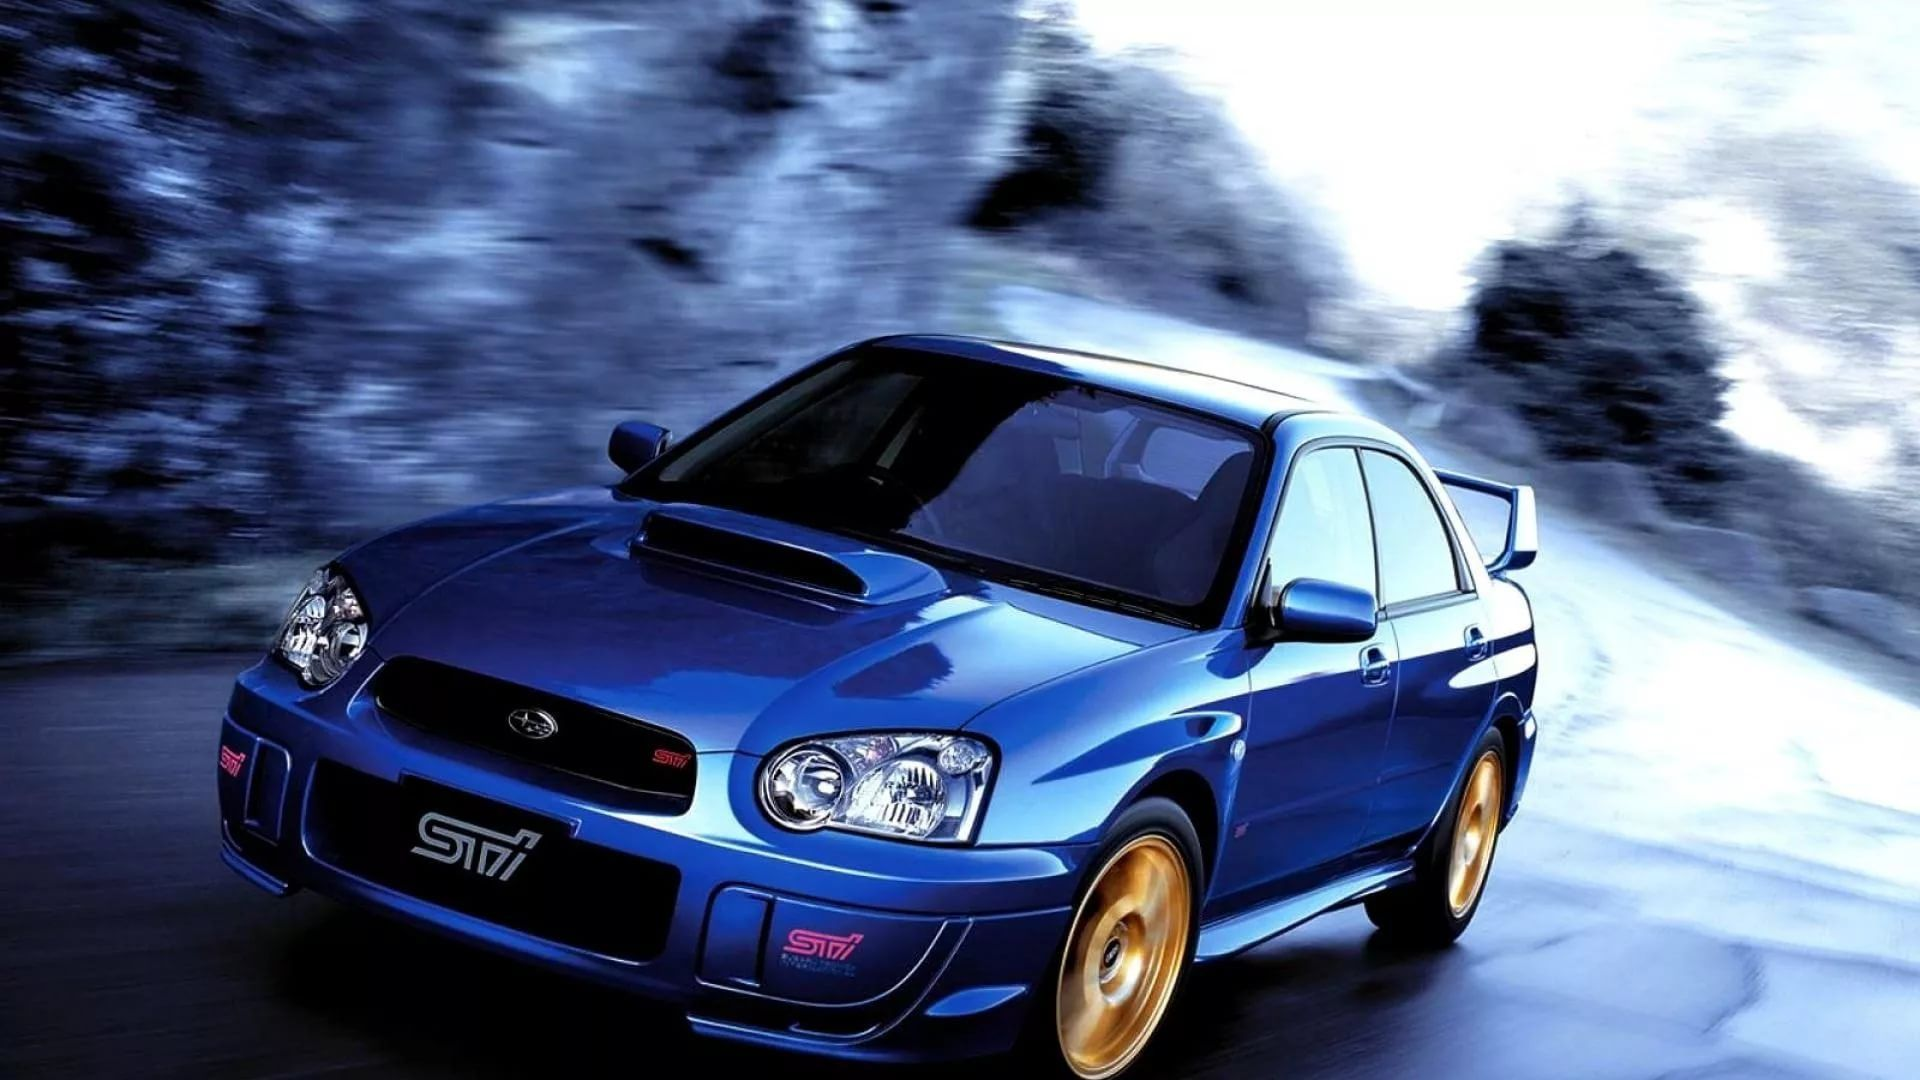 Subaru WRX wallpaper picture hd